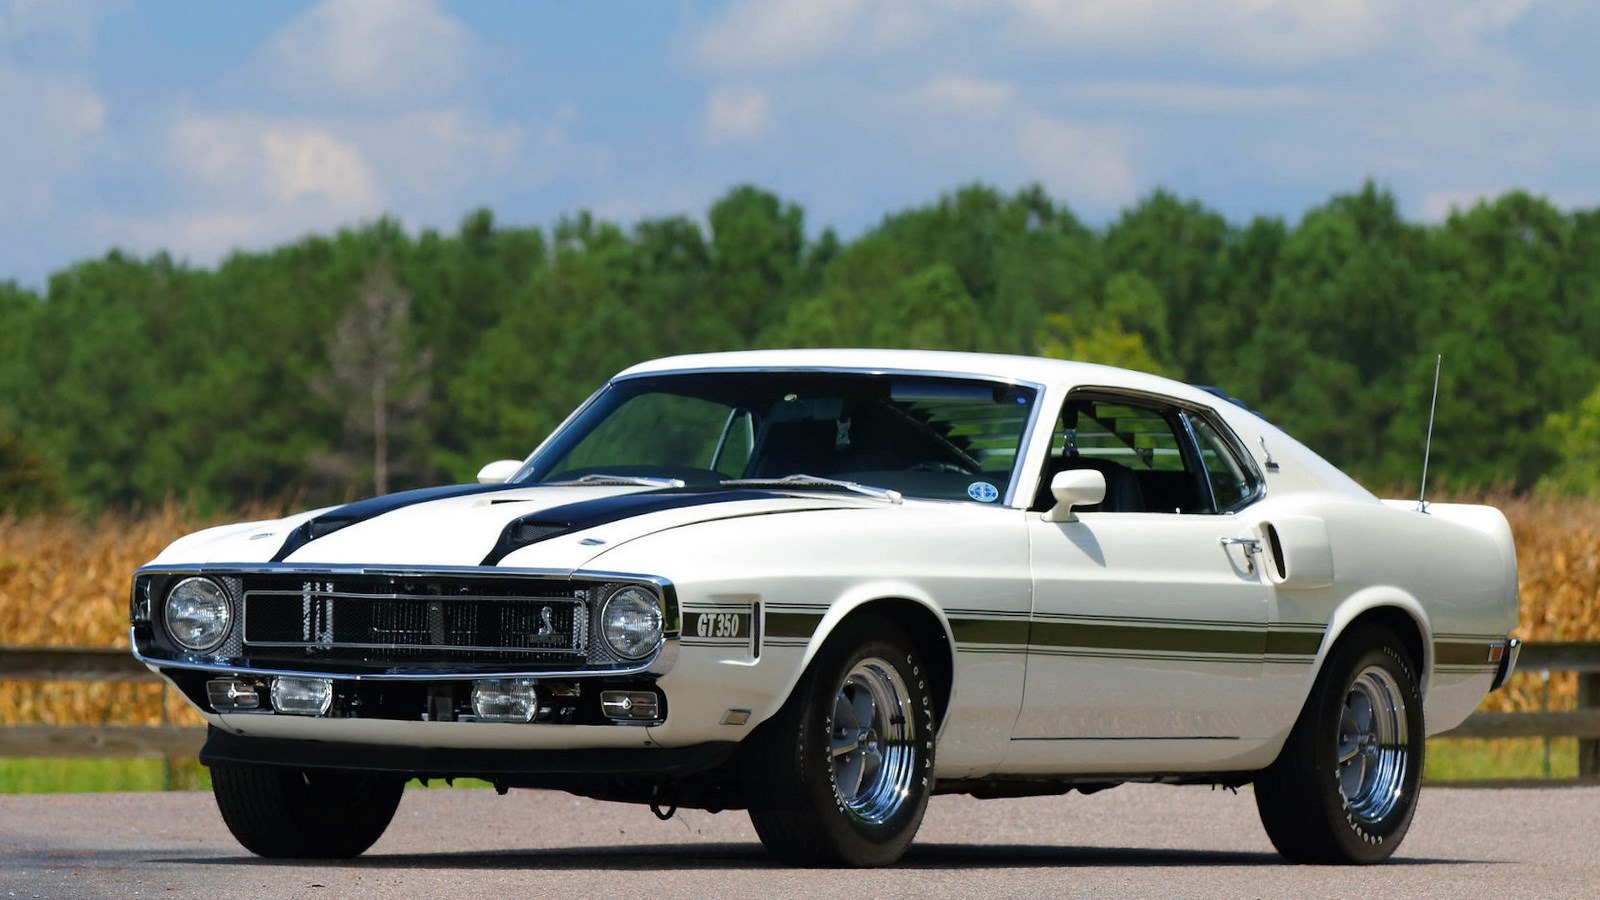 A 1970 Shelby Mustang GT350 is up for auction   Vehiclejar Blog